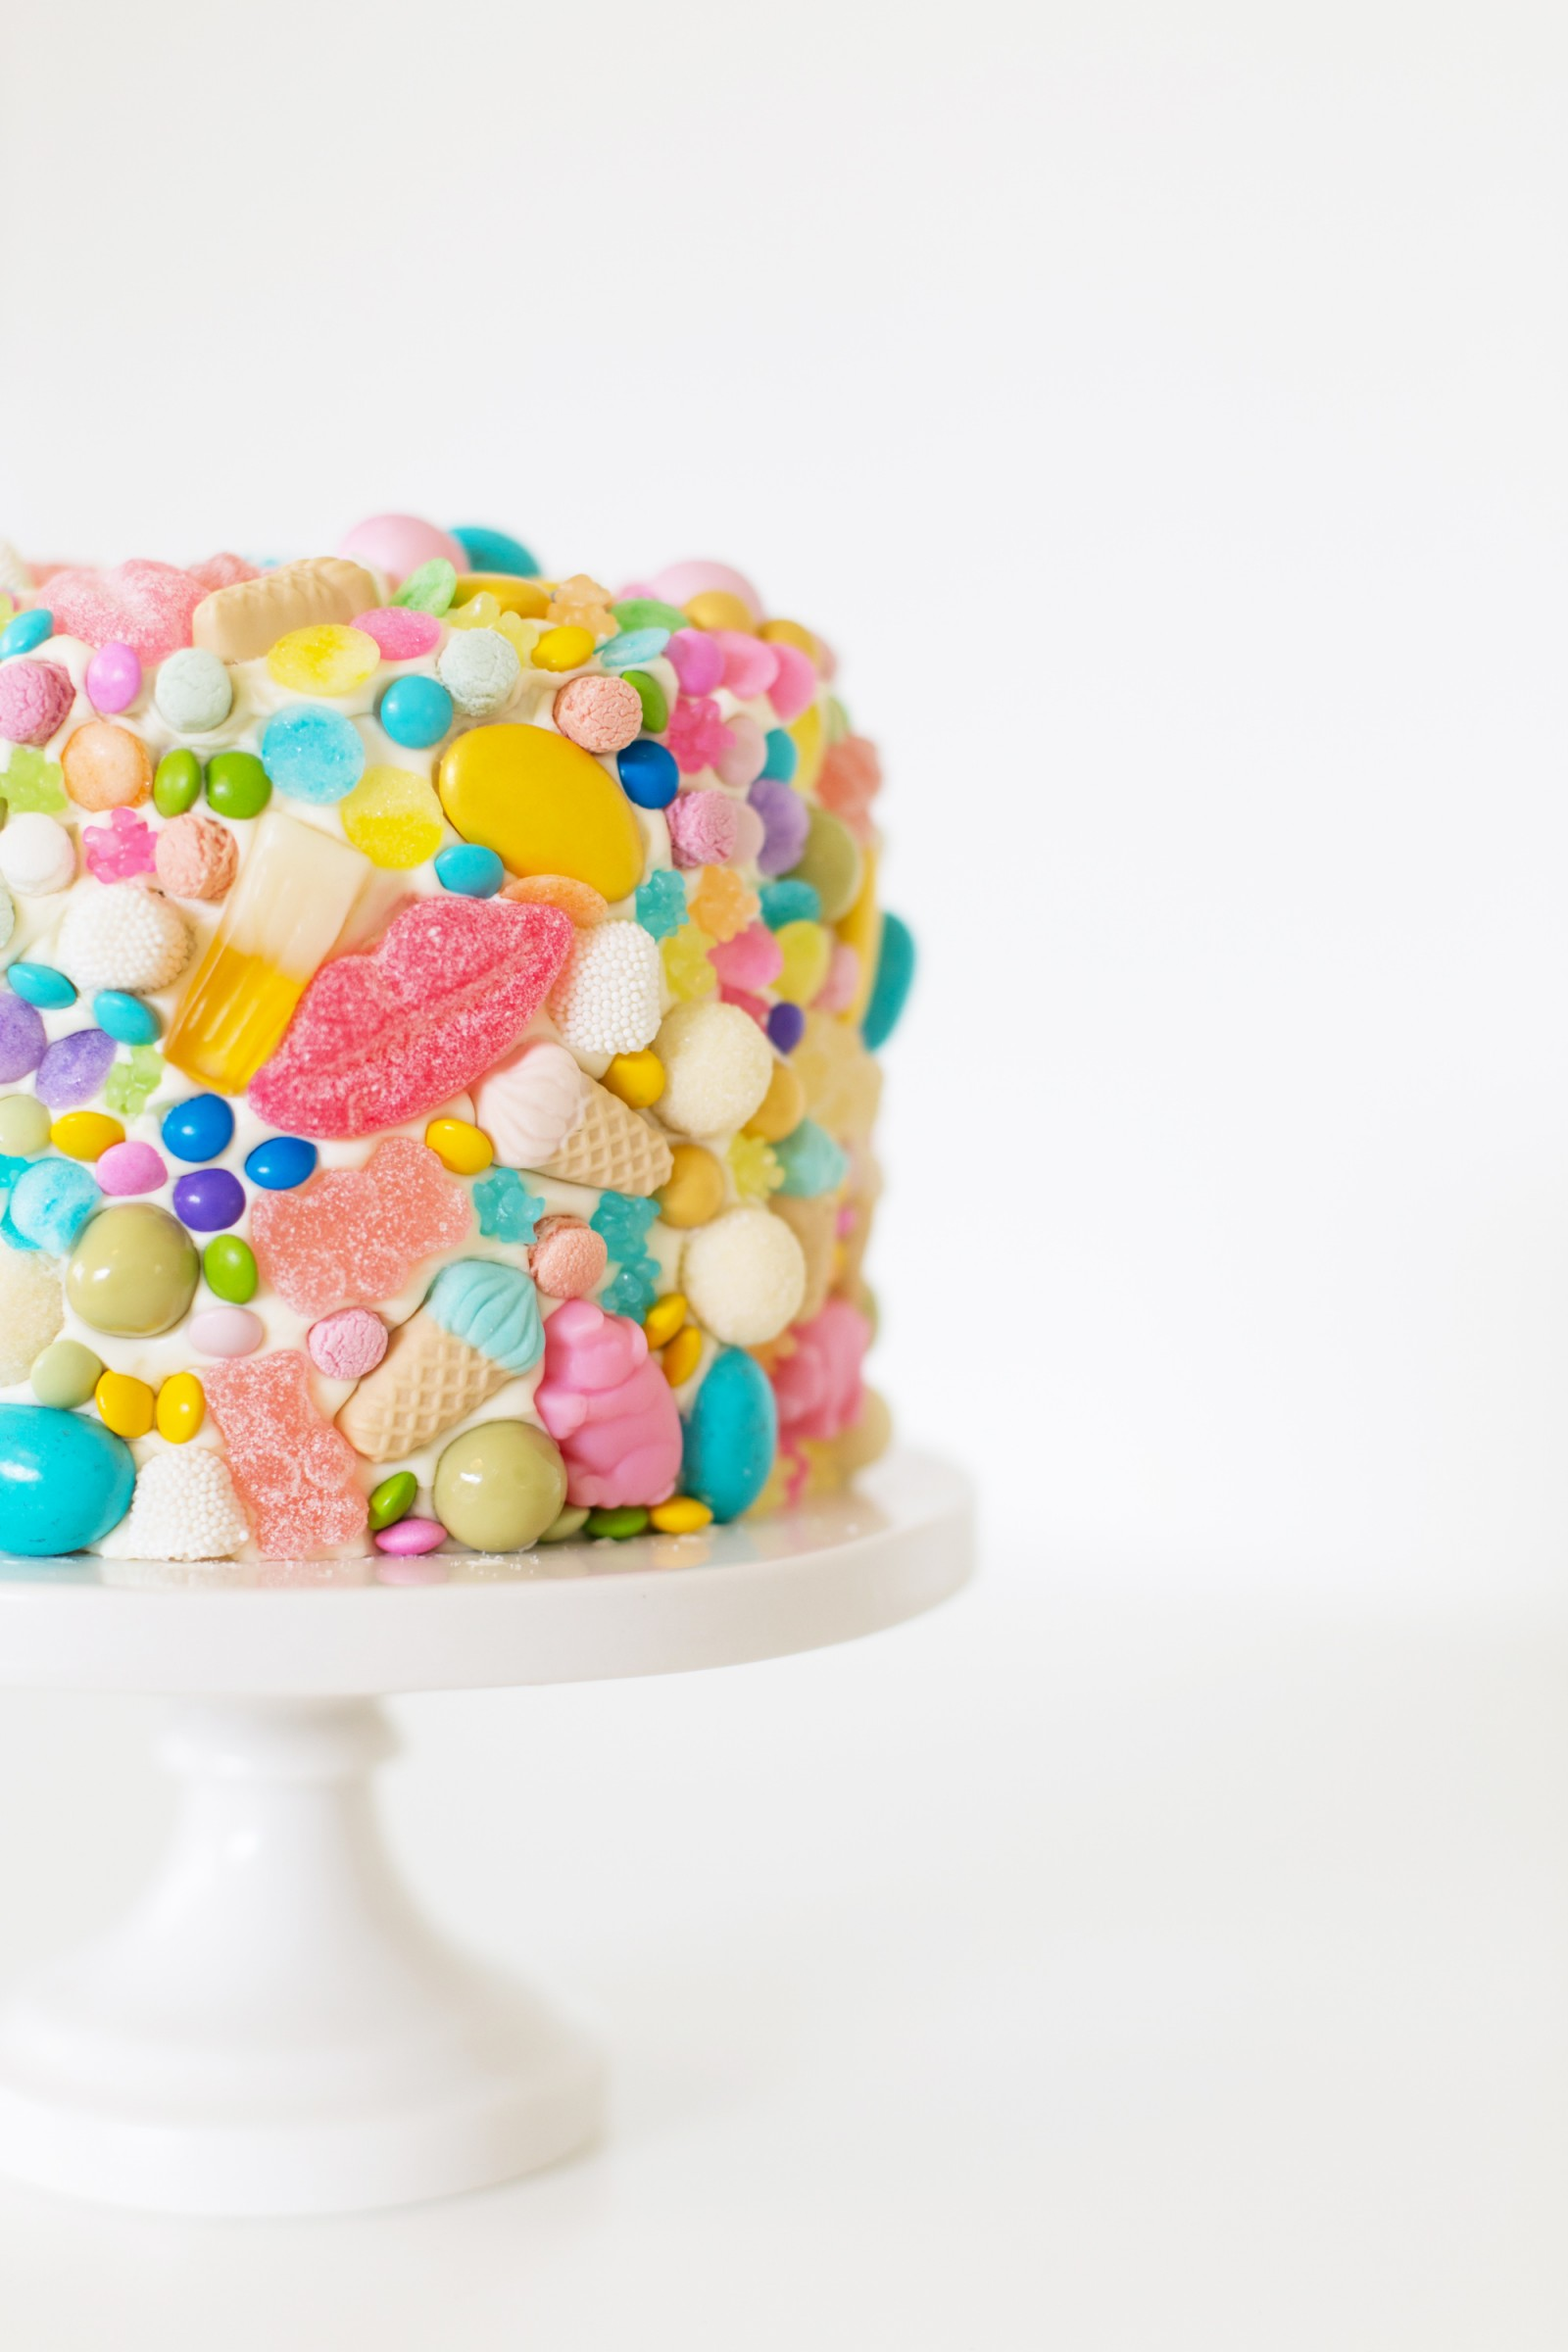 41 Easy Birthday Cake Decorating Ideas That Only Look